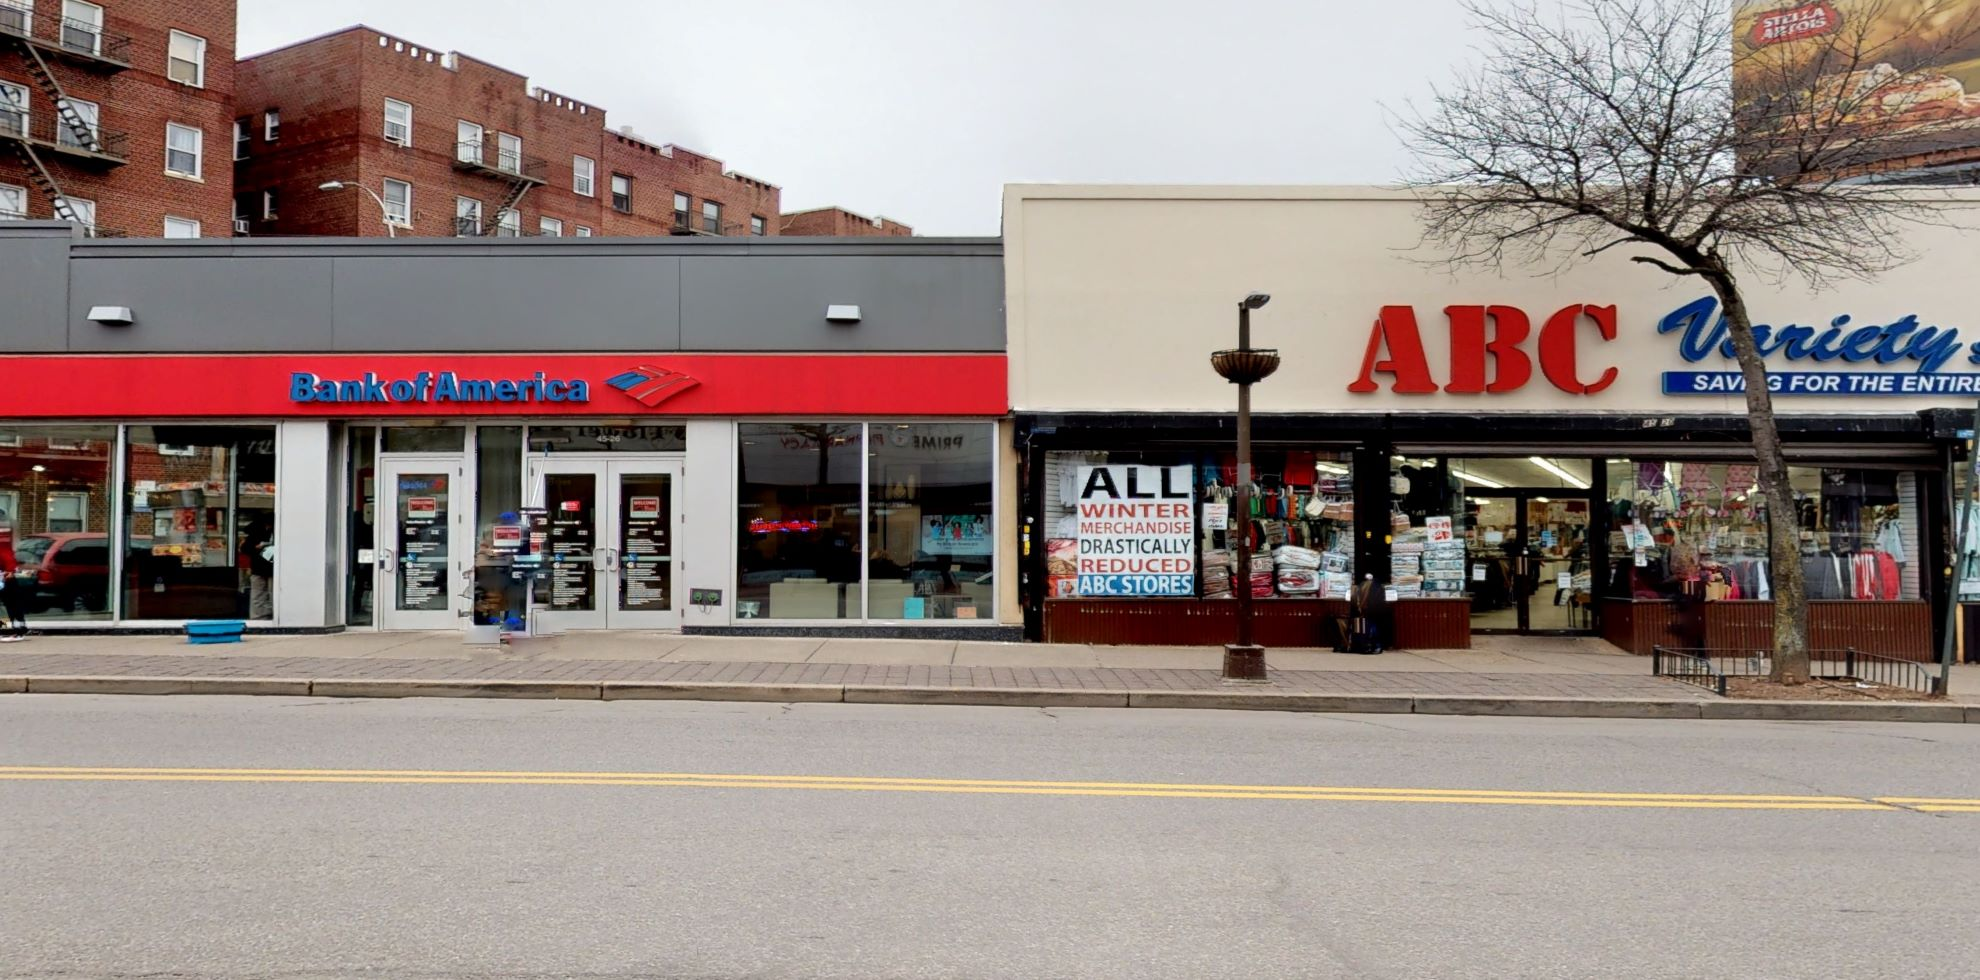 Bank of America financial center with walk-up ATM | 4526 Greenpoint Ave, Sunnyside, NY 11104